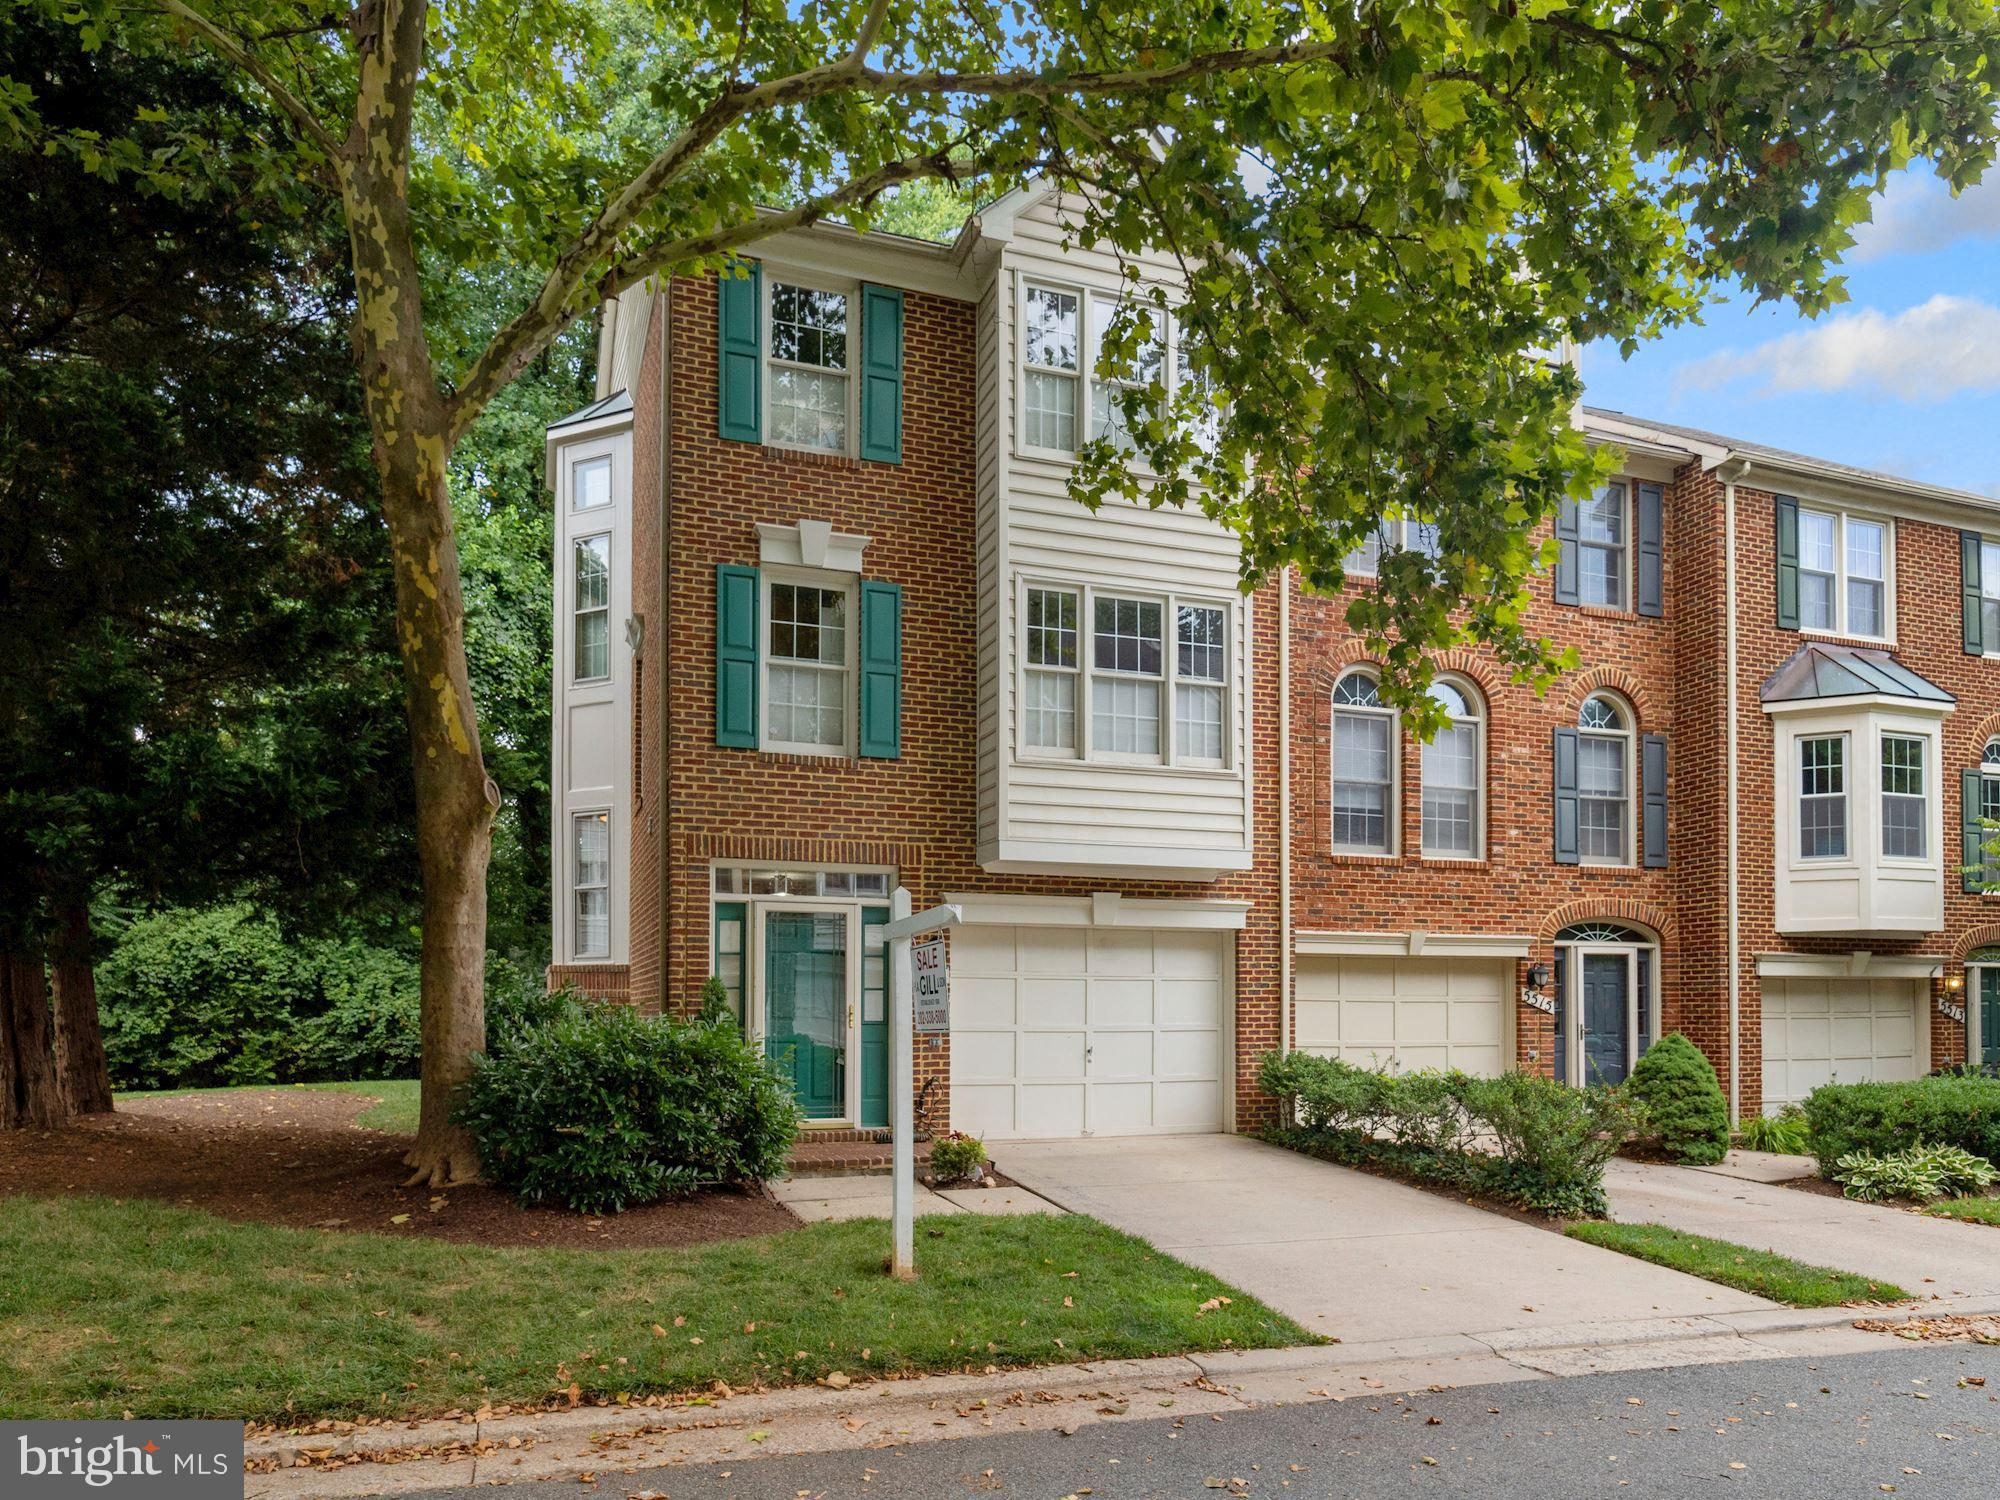 Welcome to 5517 Whitley Park Terrace.  This spacious end-unit townhouse is in absolutely immaculate